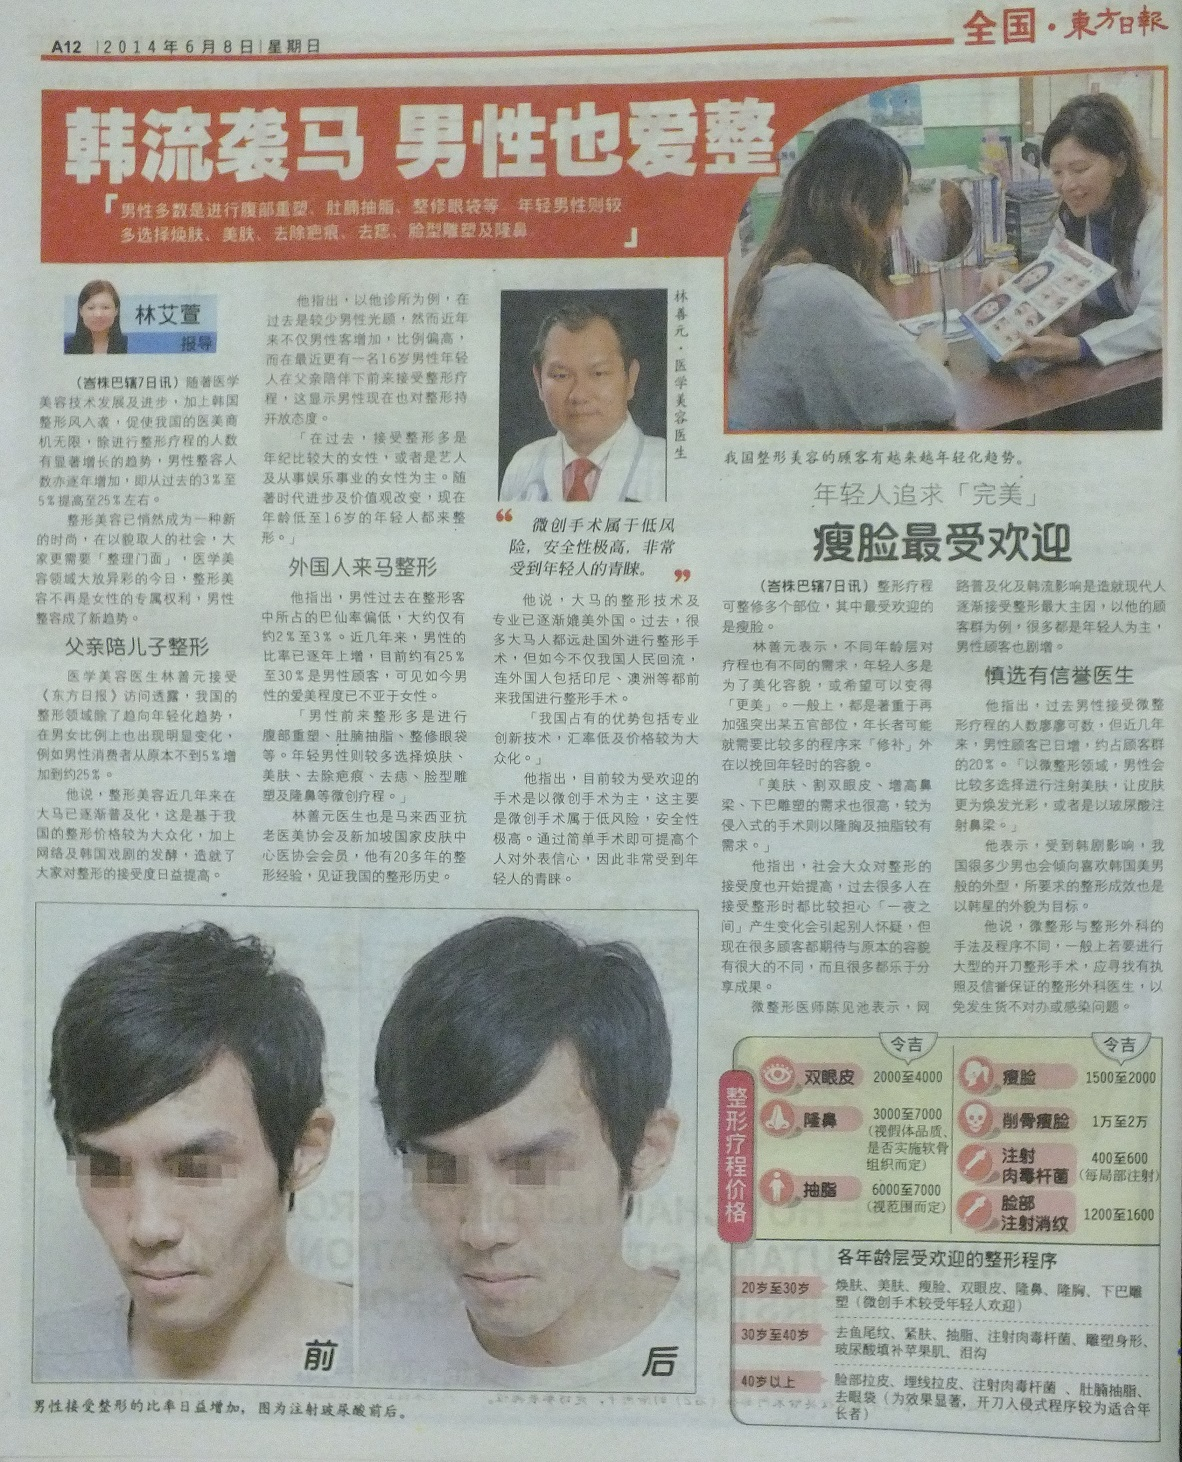 Dr David Ling interviewed by media China Post on cosmetic surgery for the male customers.